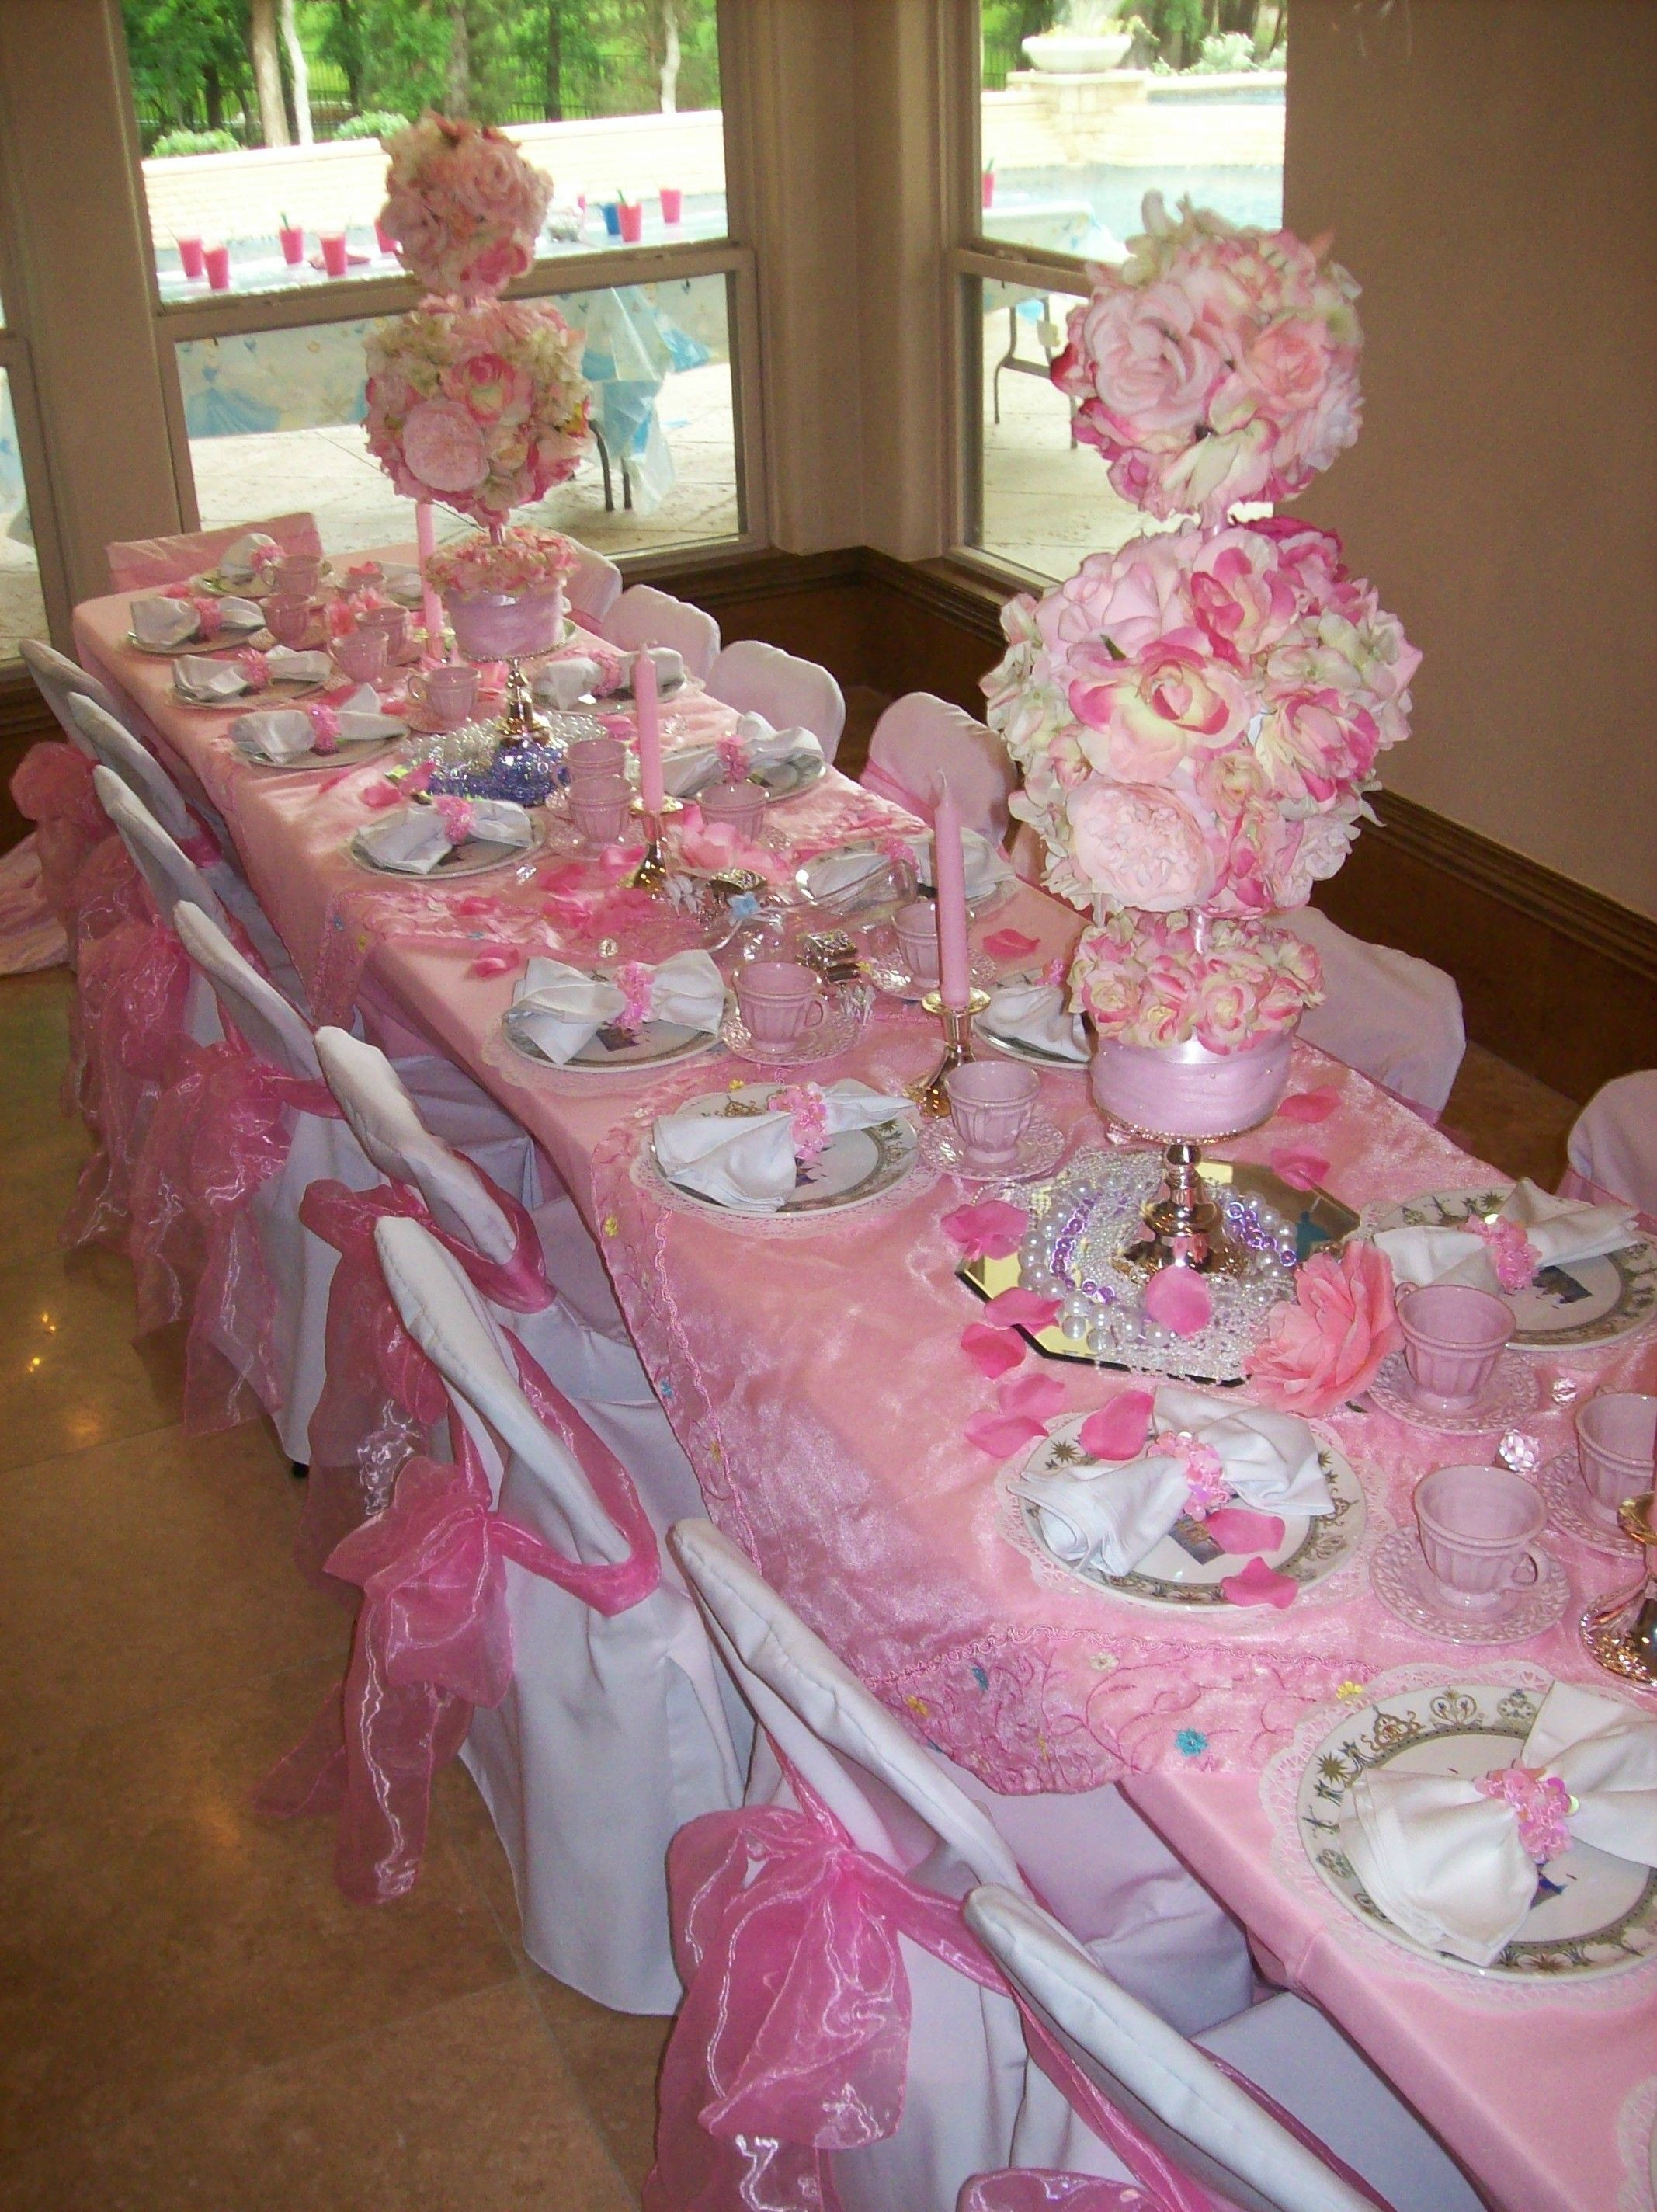 Best ideas about Girls Birthday Party . Save or Pin spa party ideas for girls birthday Now.